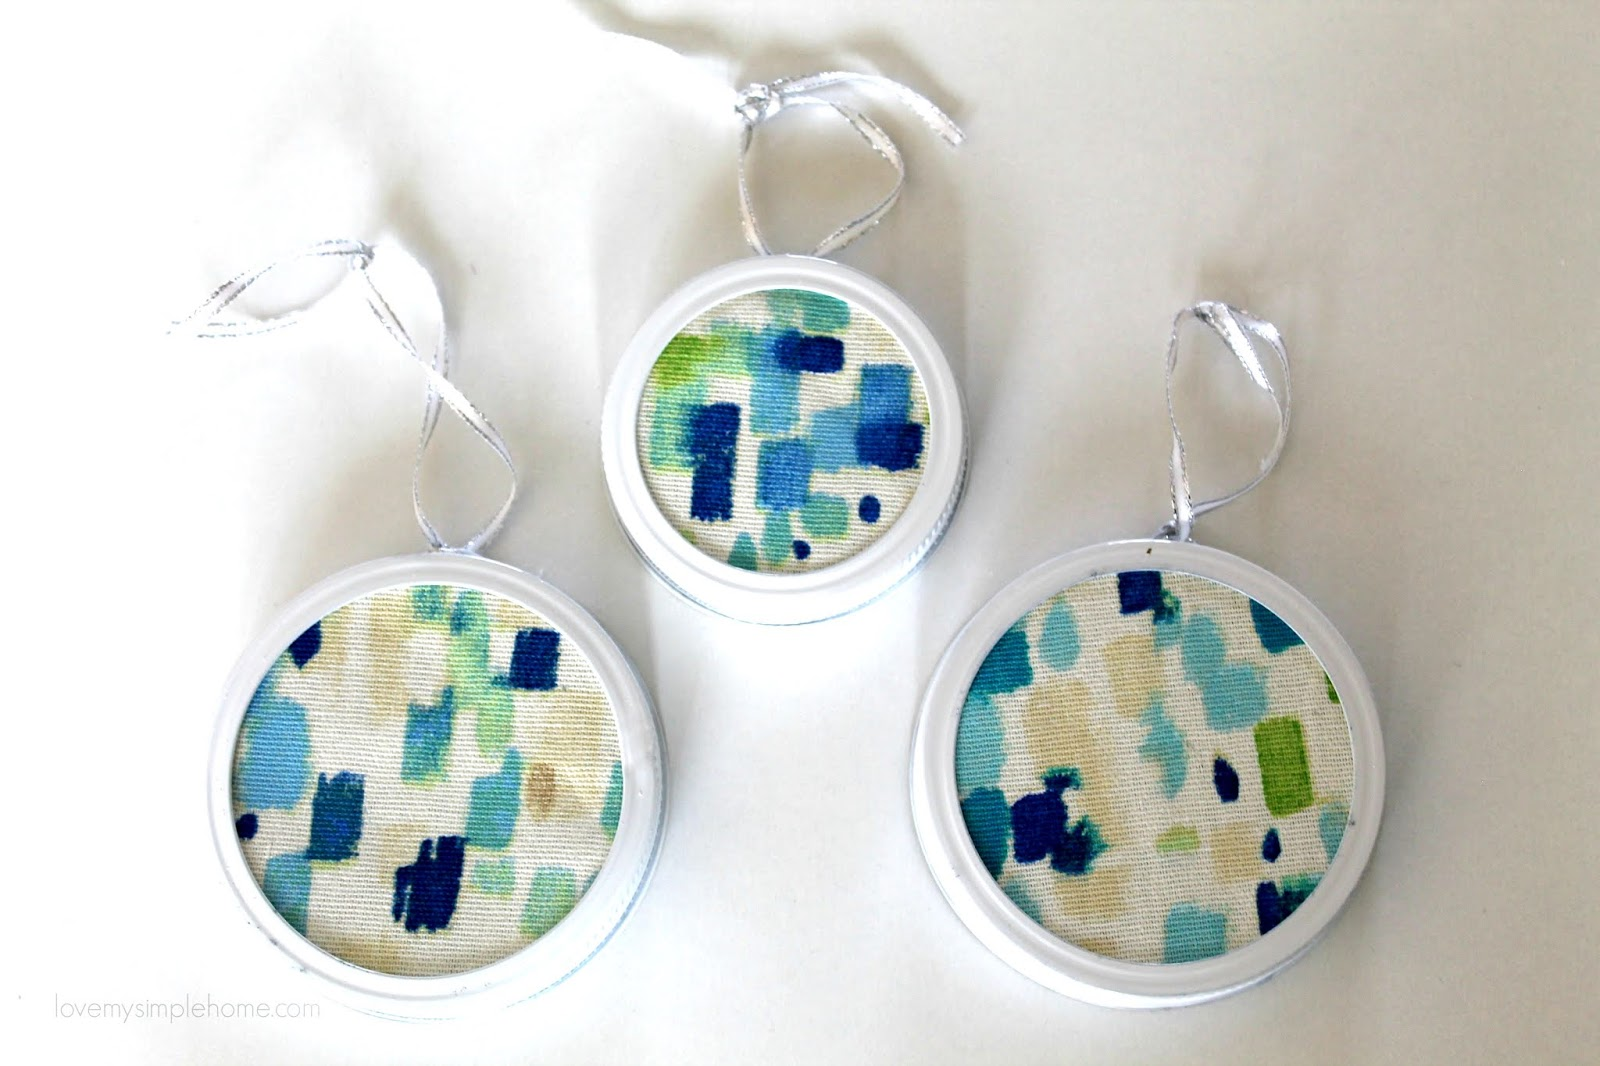 abstract-fabric-Christmas-ornaments-lovemysimplehome.com